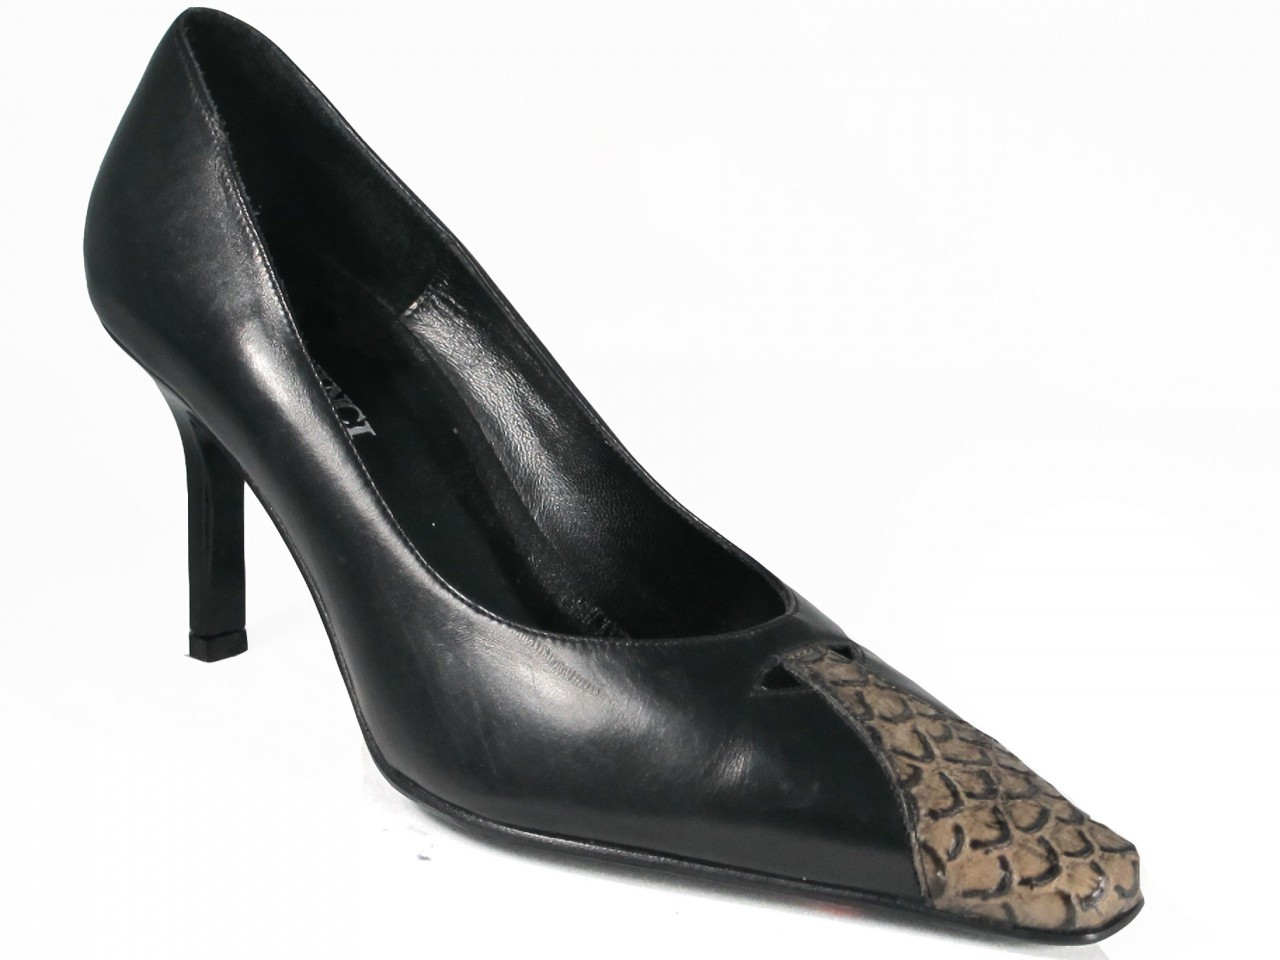 Latest style Women Italian African Party Pumps Shoes and